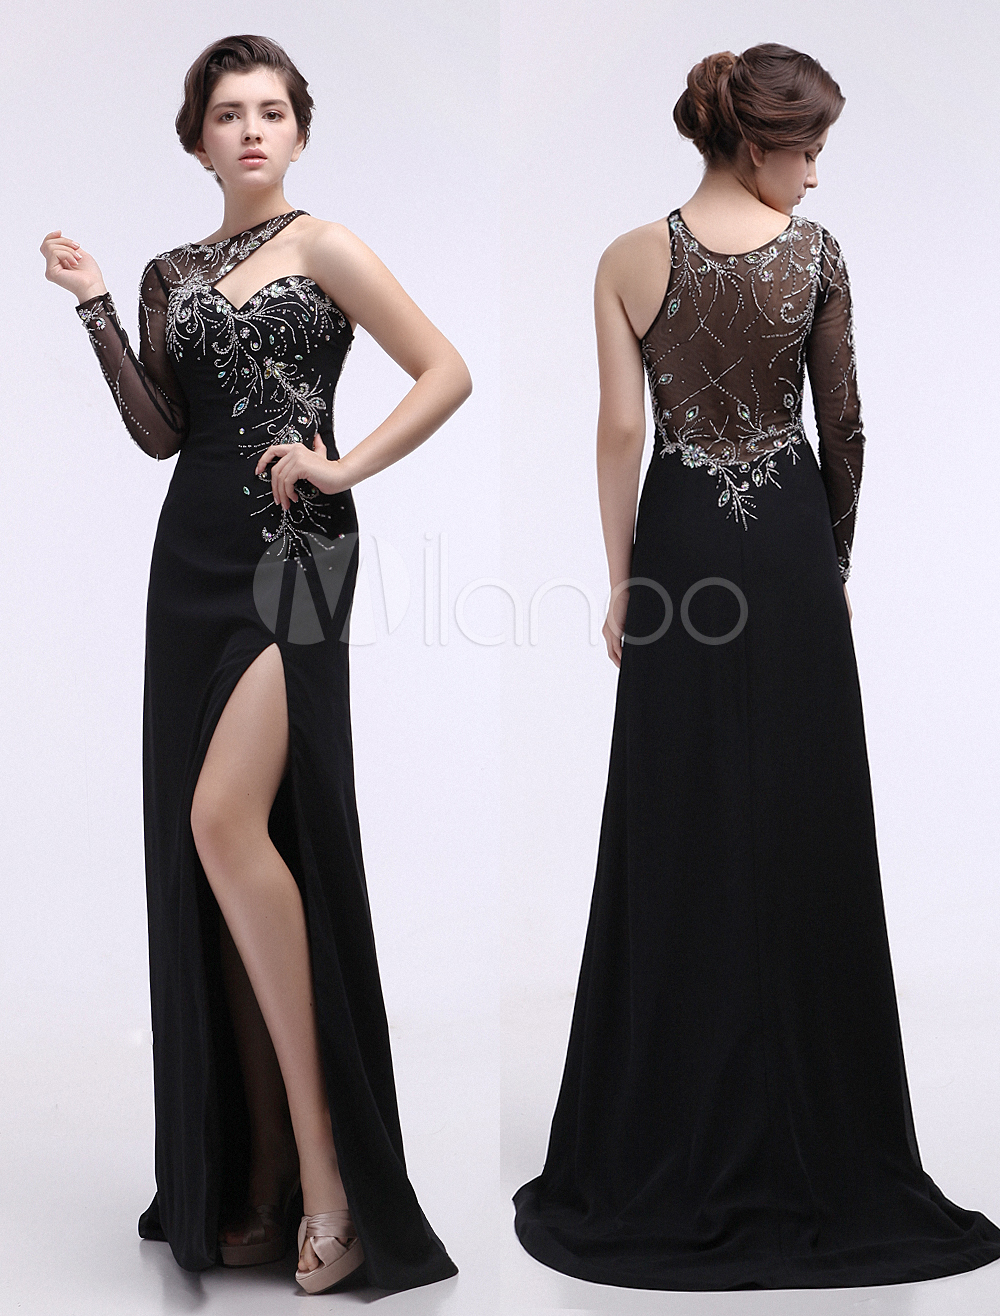 Prom dress from spring 2014 collection